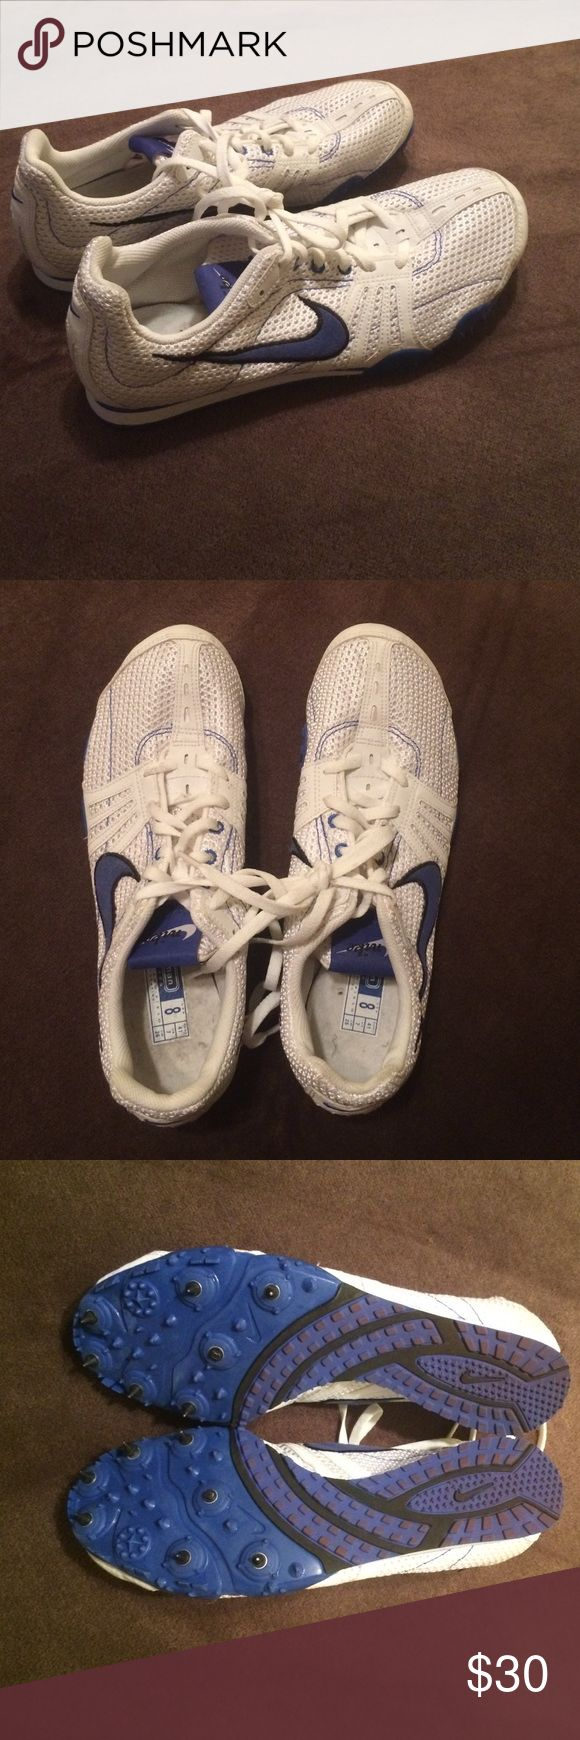 Spiked running shoes Nike spiked tennis shoes. Great condition. Nike Shoes Athletic Shoes